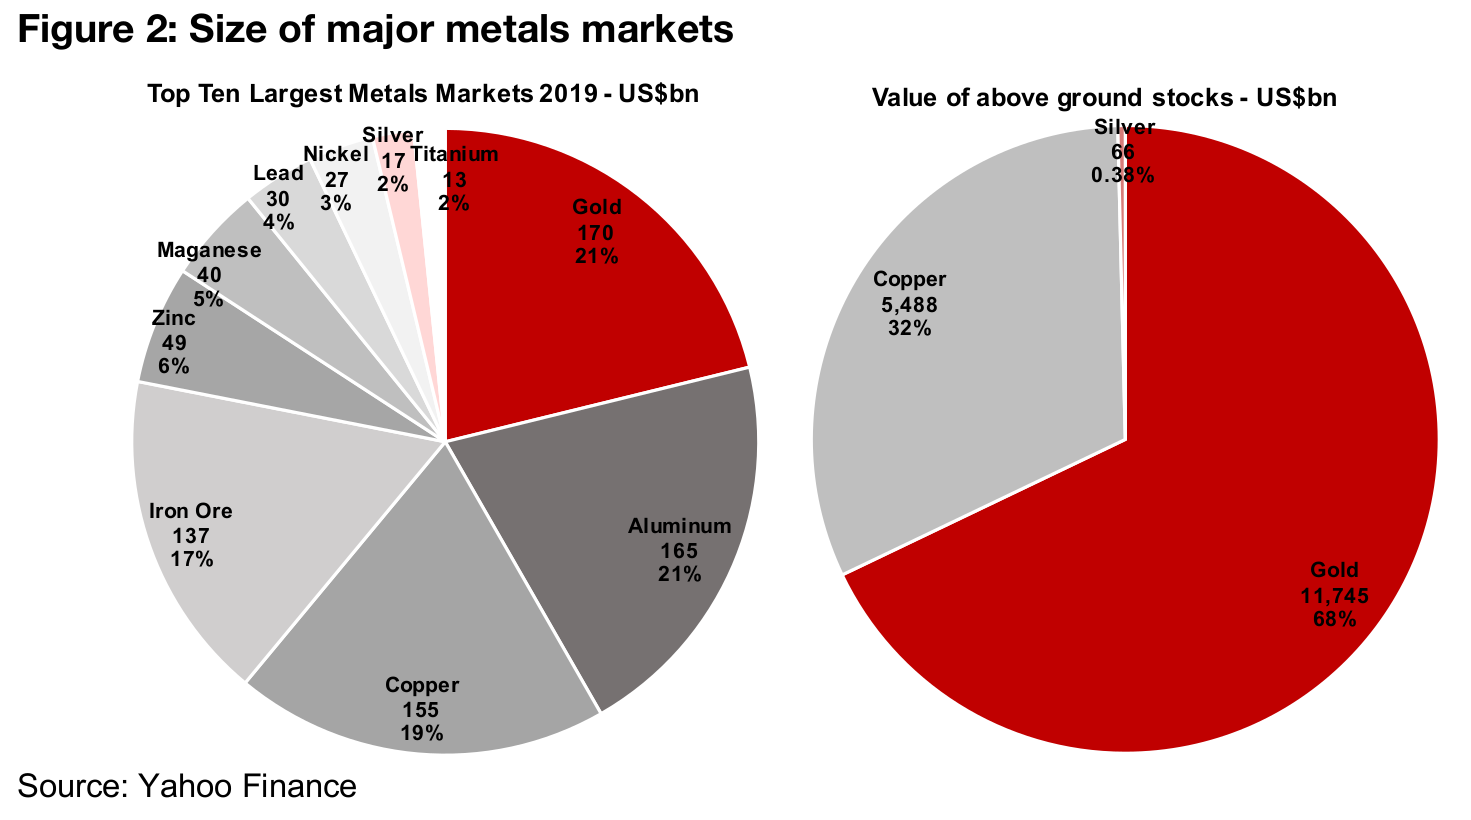 Silver is a very small market compared to gold